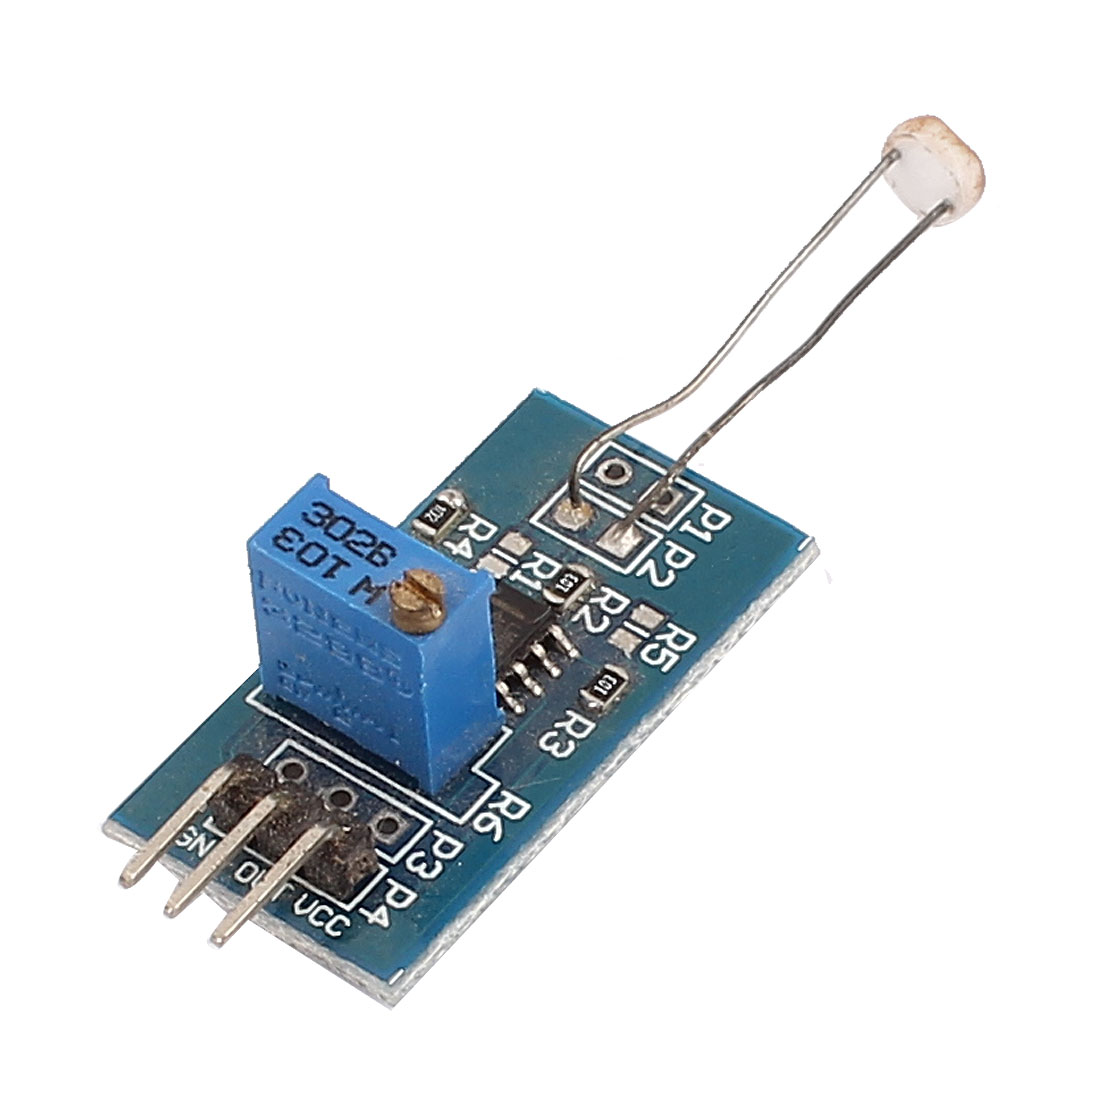 DC 3.3-5V 3 Terminals Light Detection Photosensitive Resistance Module